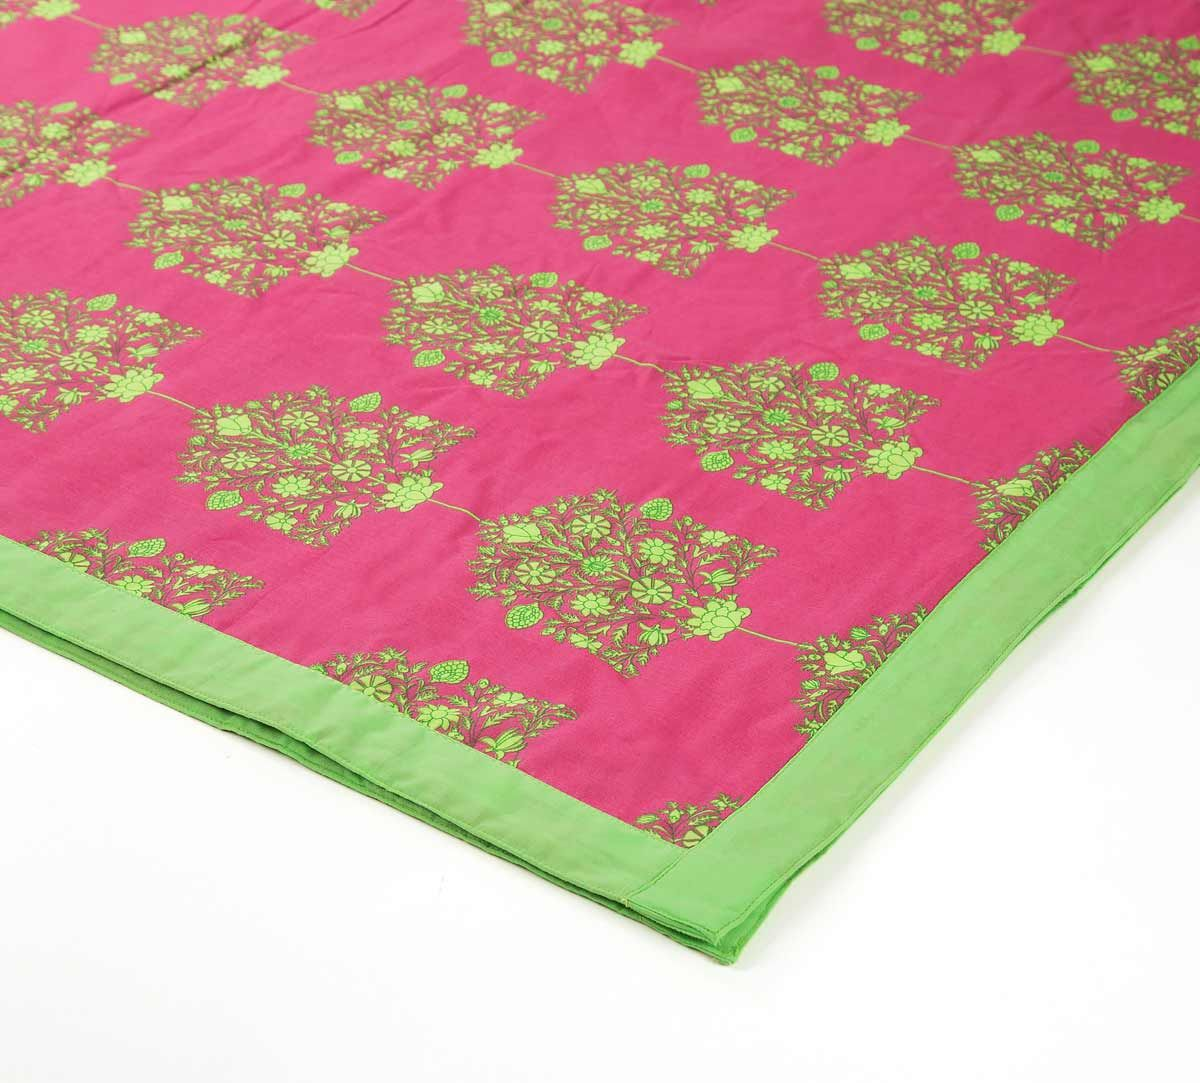 Discover Trending Designs In Dohar Blankets And Quilts